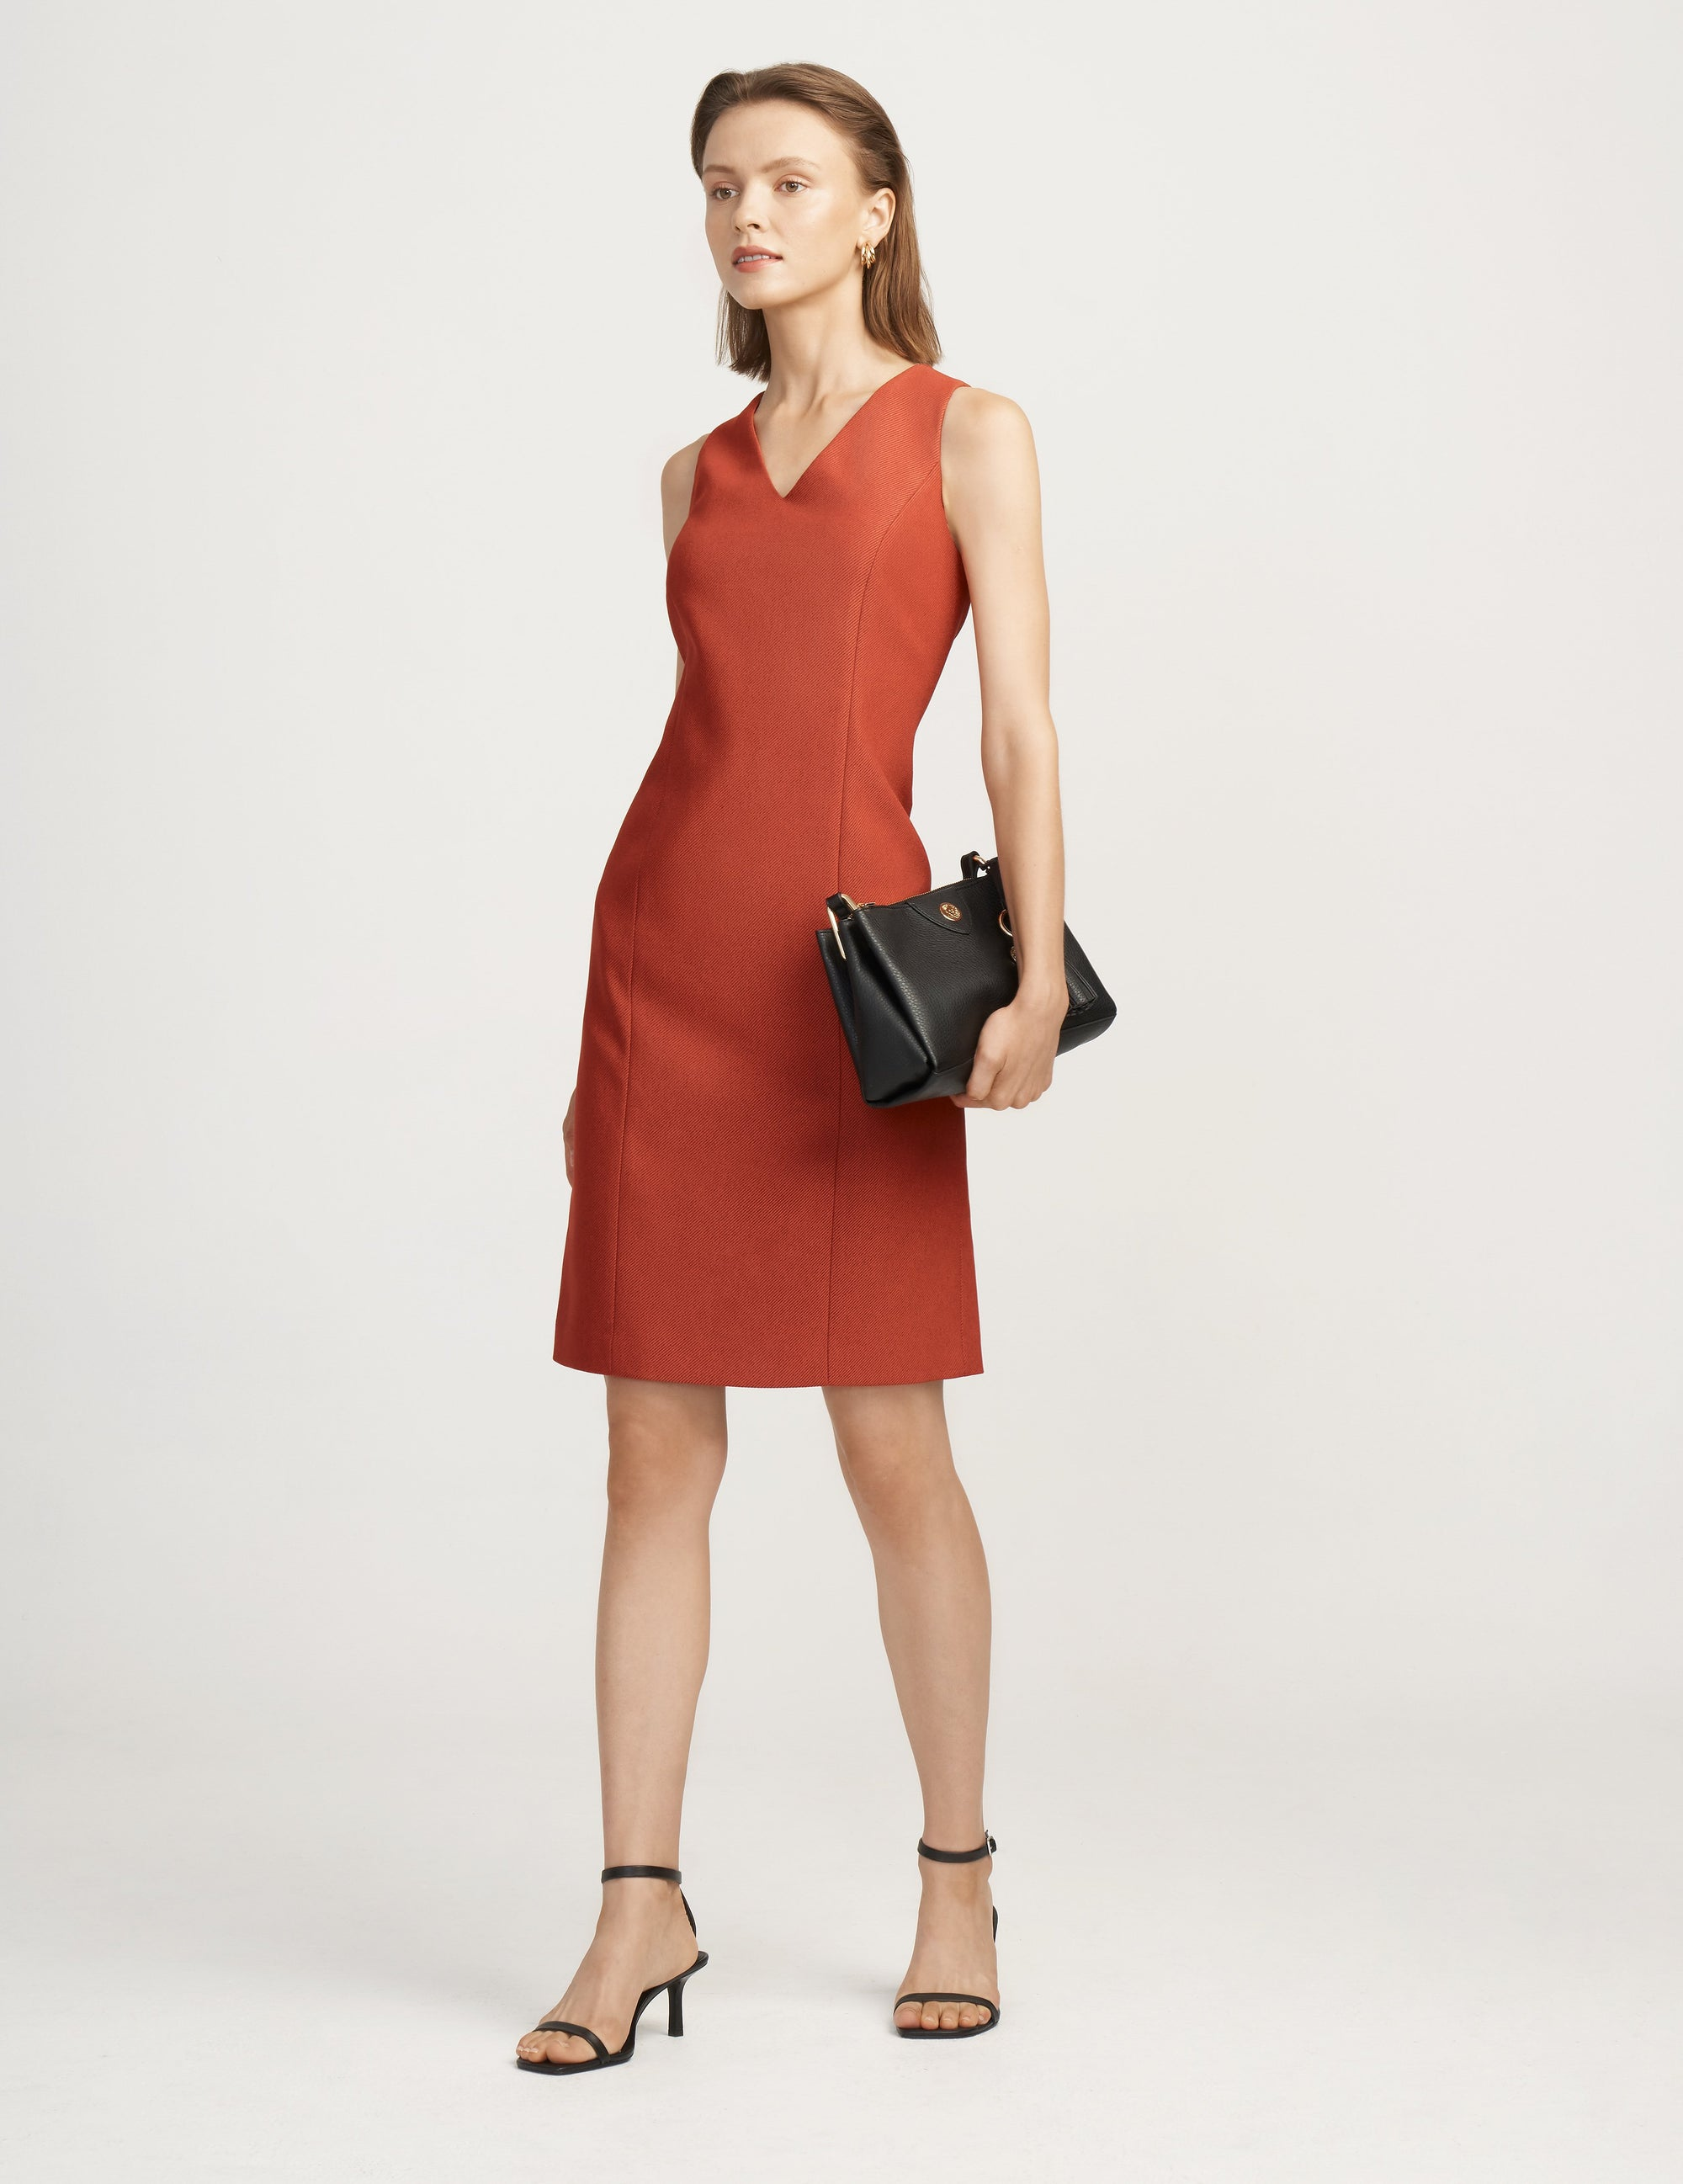 Anne Klein Cinnamon/Black Twill Sheath Dress